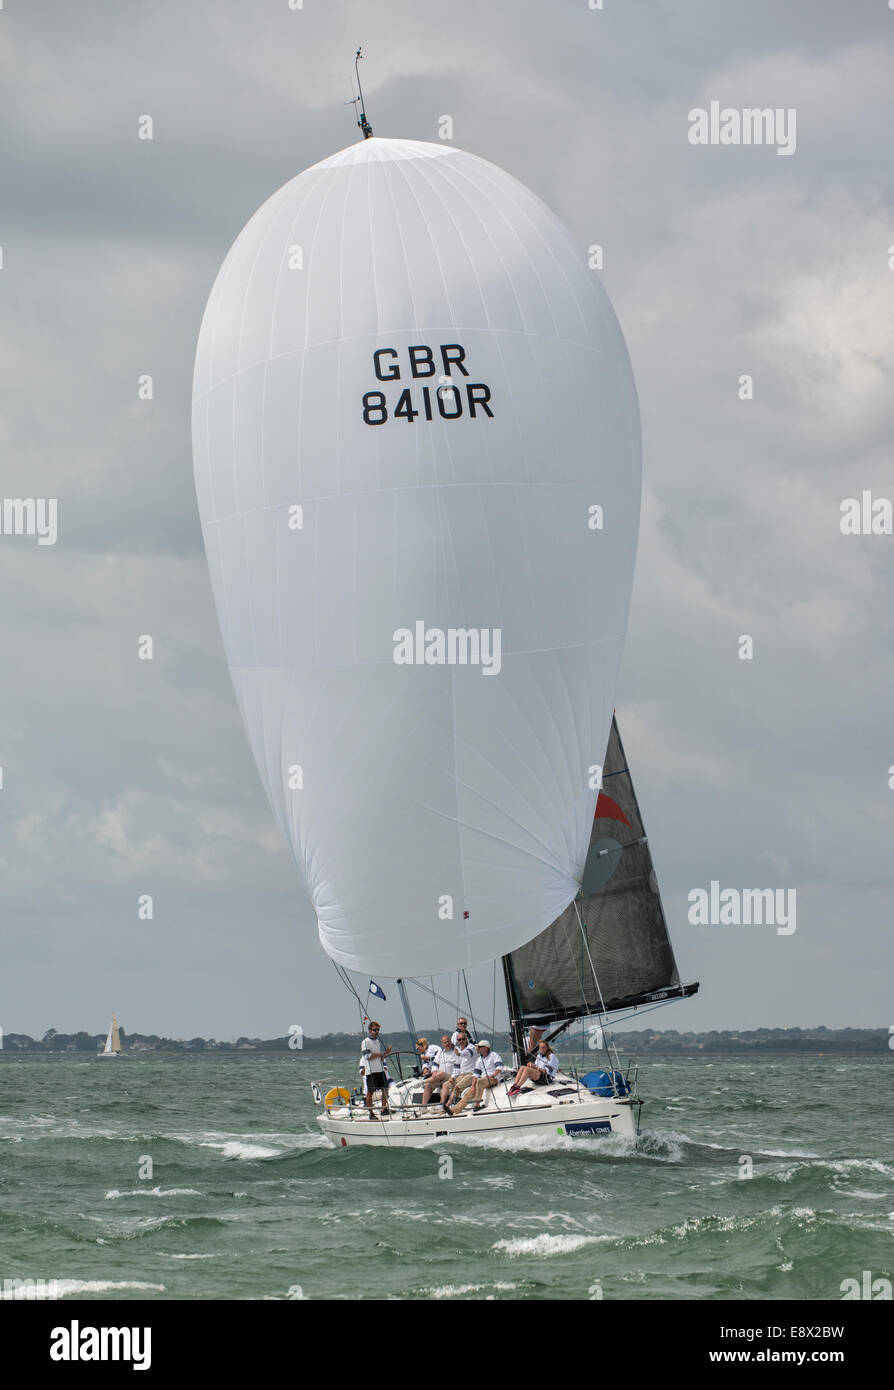 Racing Yacht Premier Flair an Elan 410, Sail Number GBR8410R with spinnaker deployed in the Solent during the 2014 - Stock Image